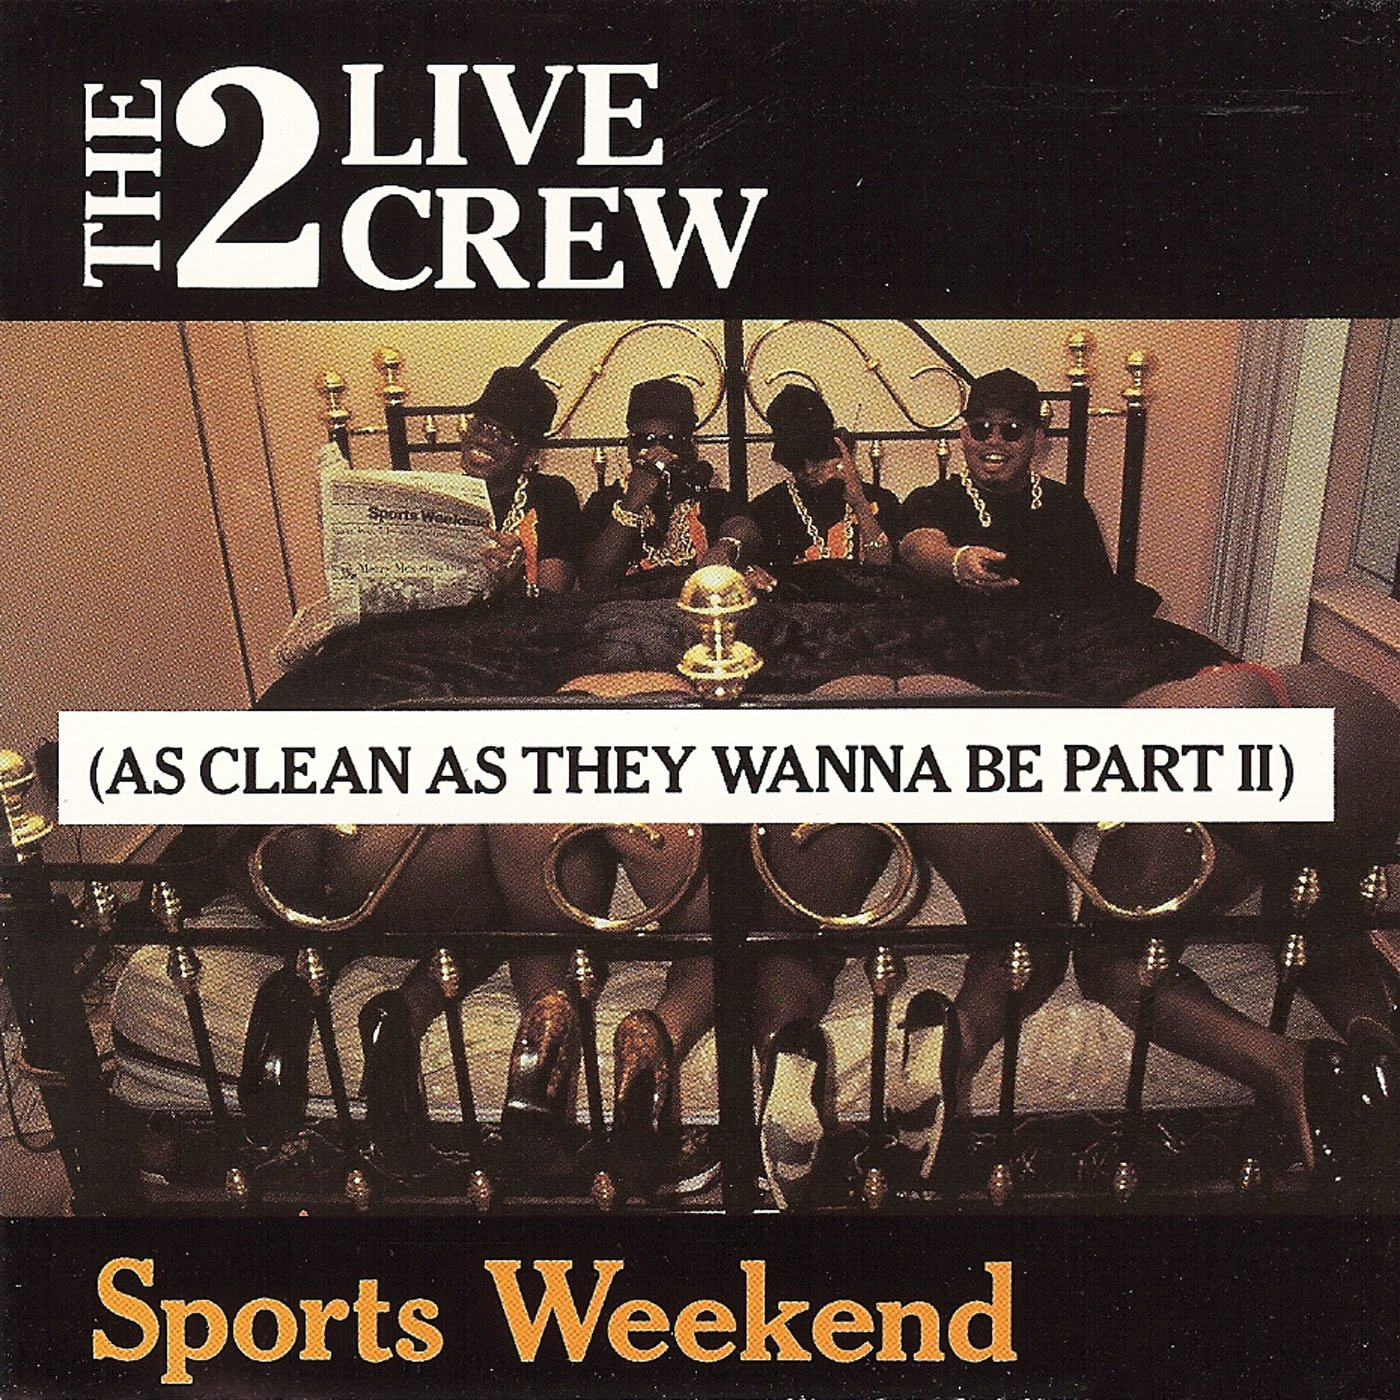 Sports Weekend (As Clean As They Wanna Be Part II)